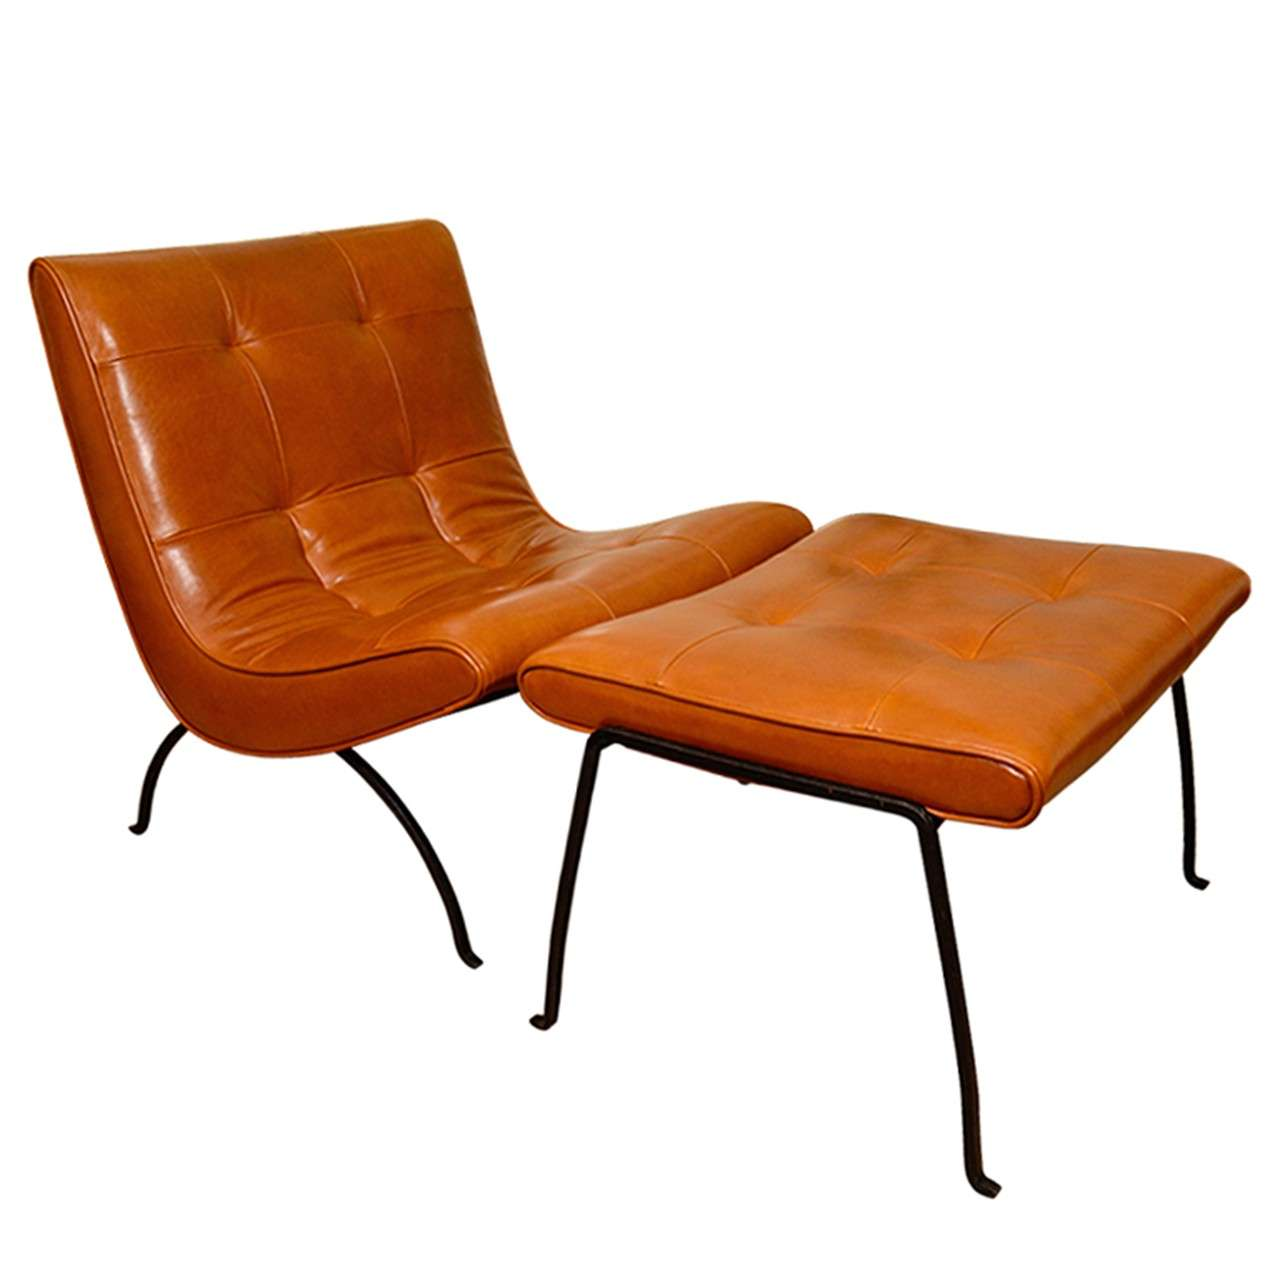 modern slipper chair medline transport parts milo baughman chairs and ottoman at 1stdibs for sale